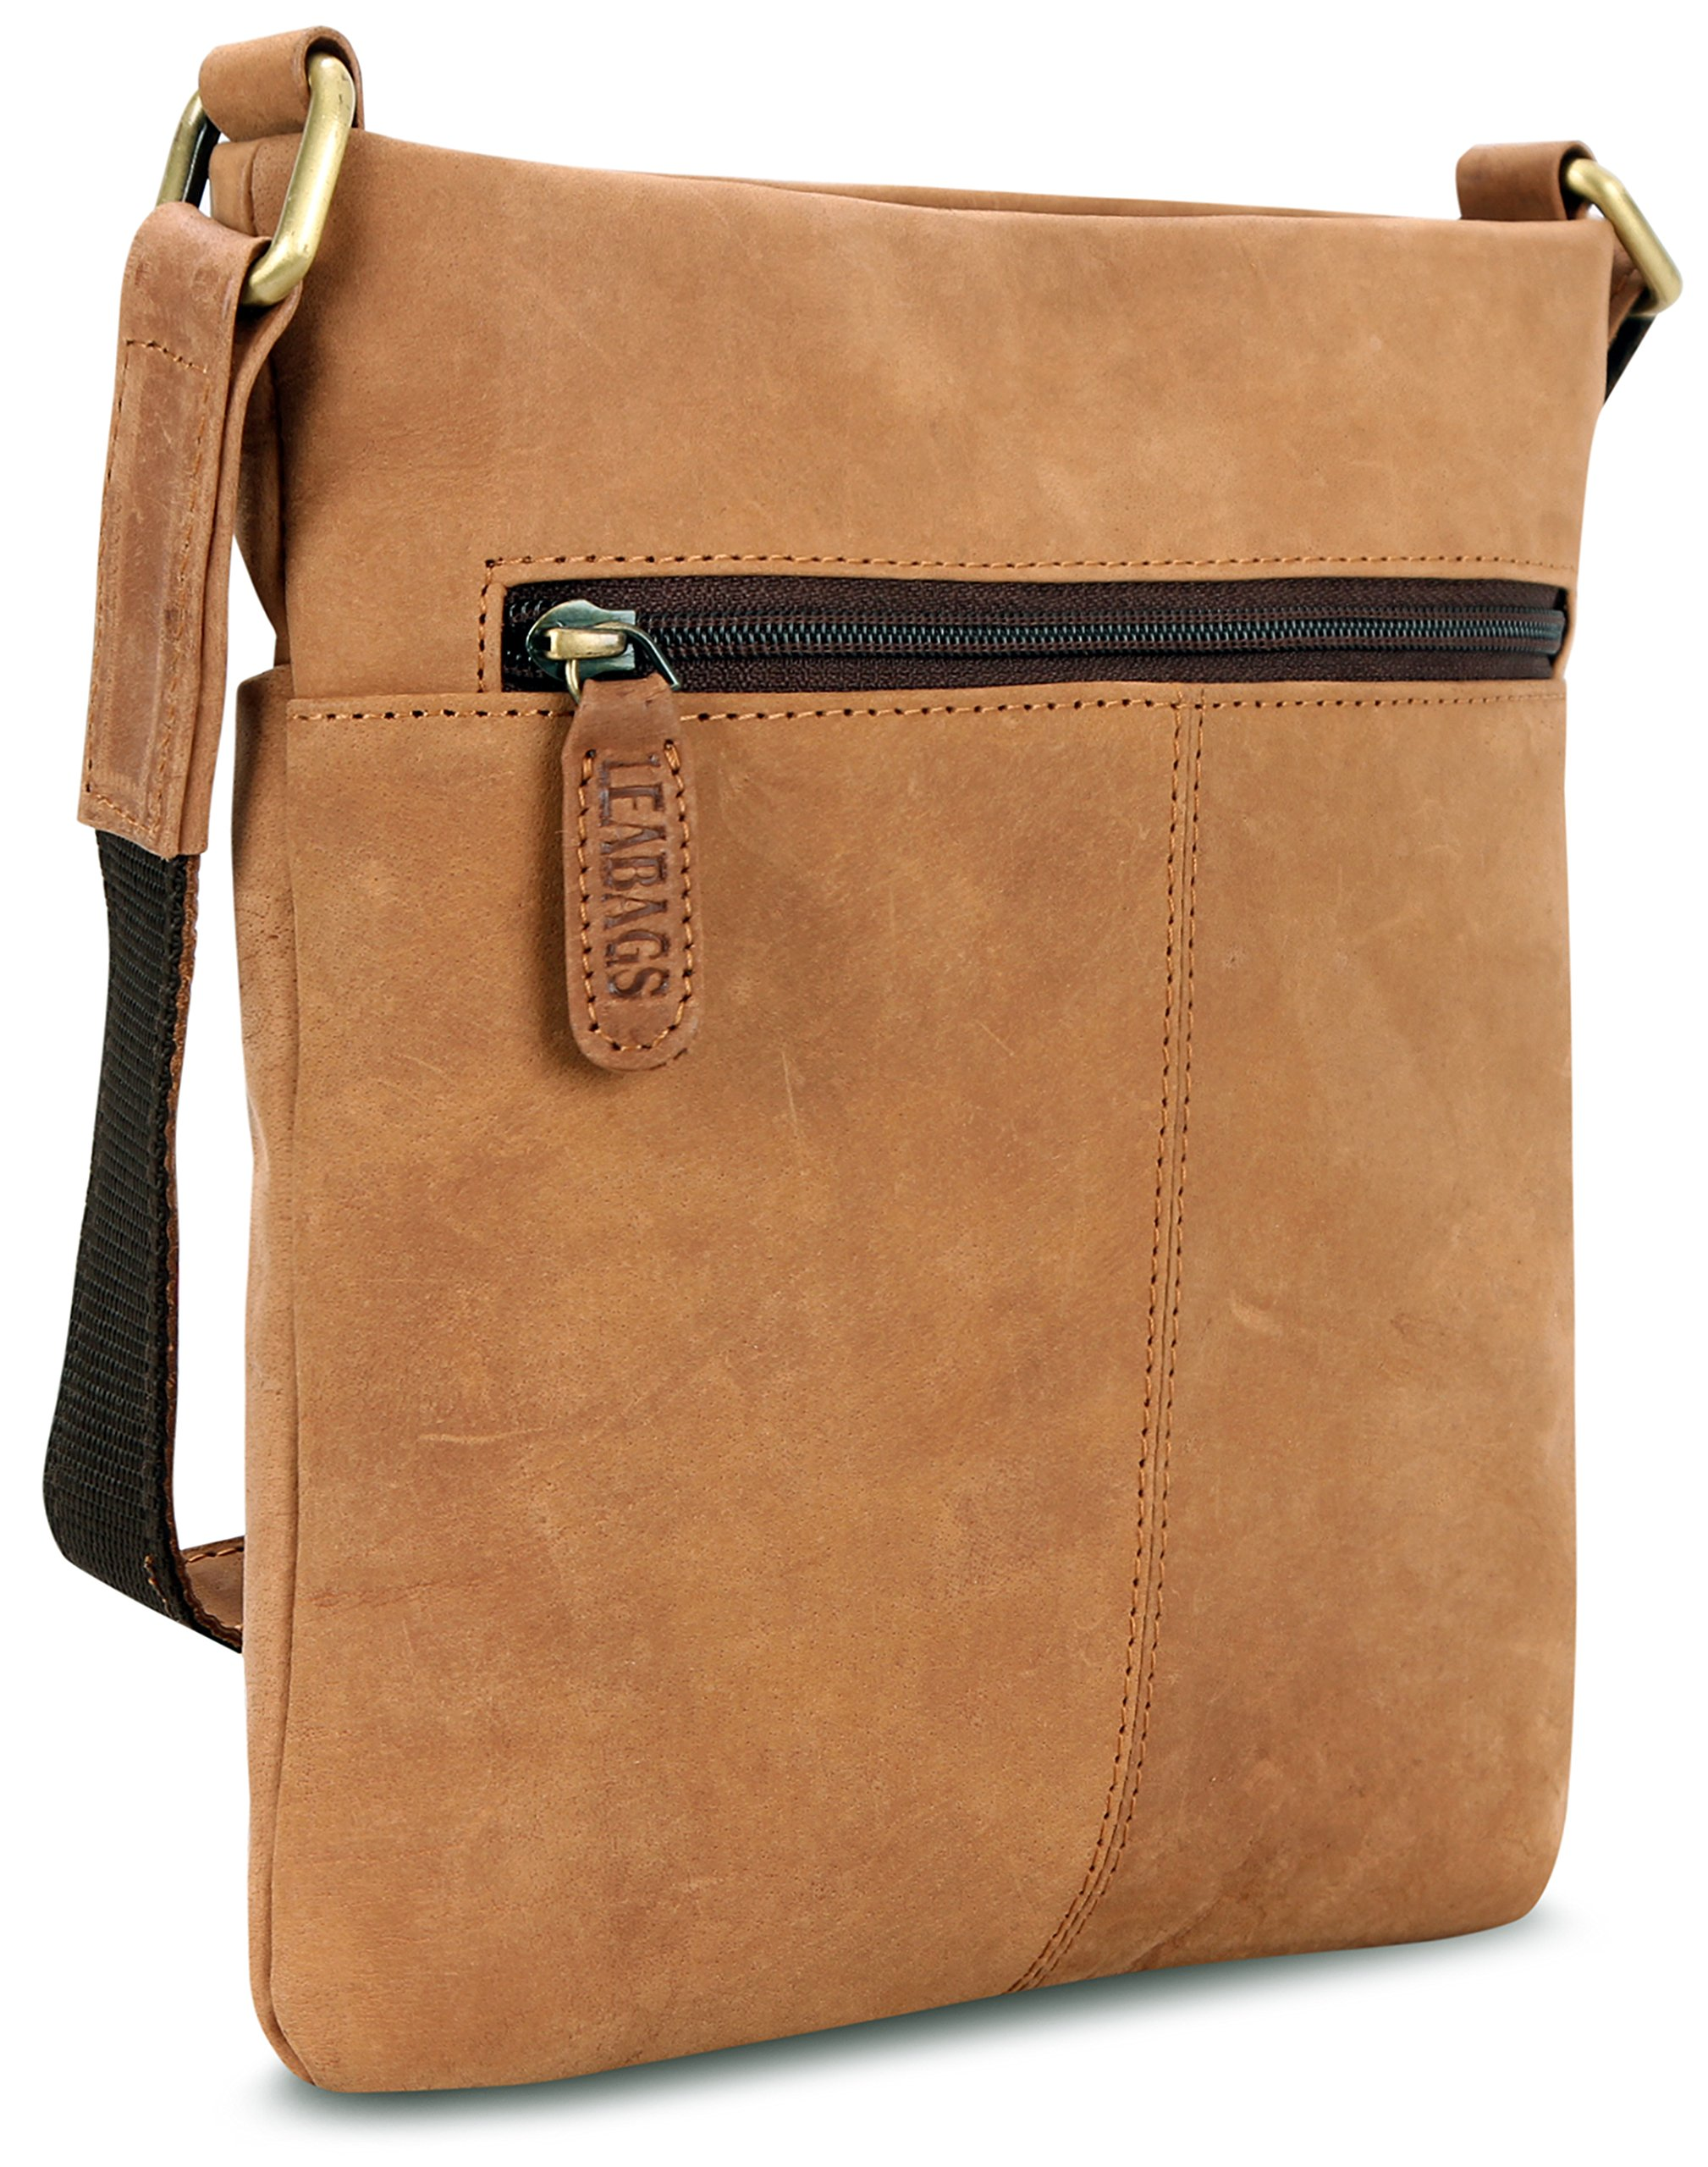 LEABAGS Seattle genuine buffalo leather crossbody bag in vintage style - Brown by LEABAGS (Image #5)